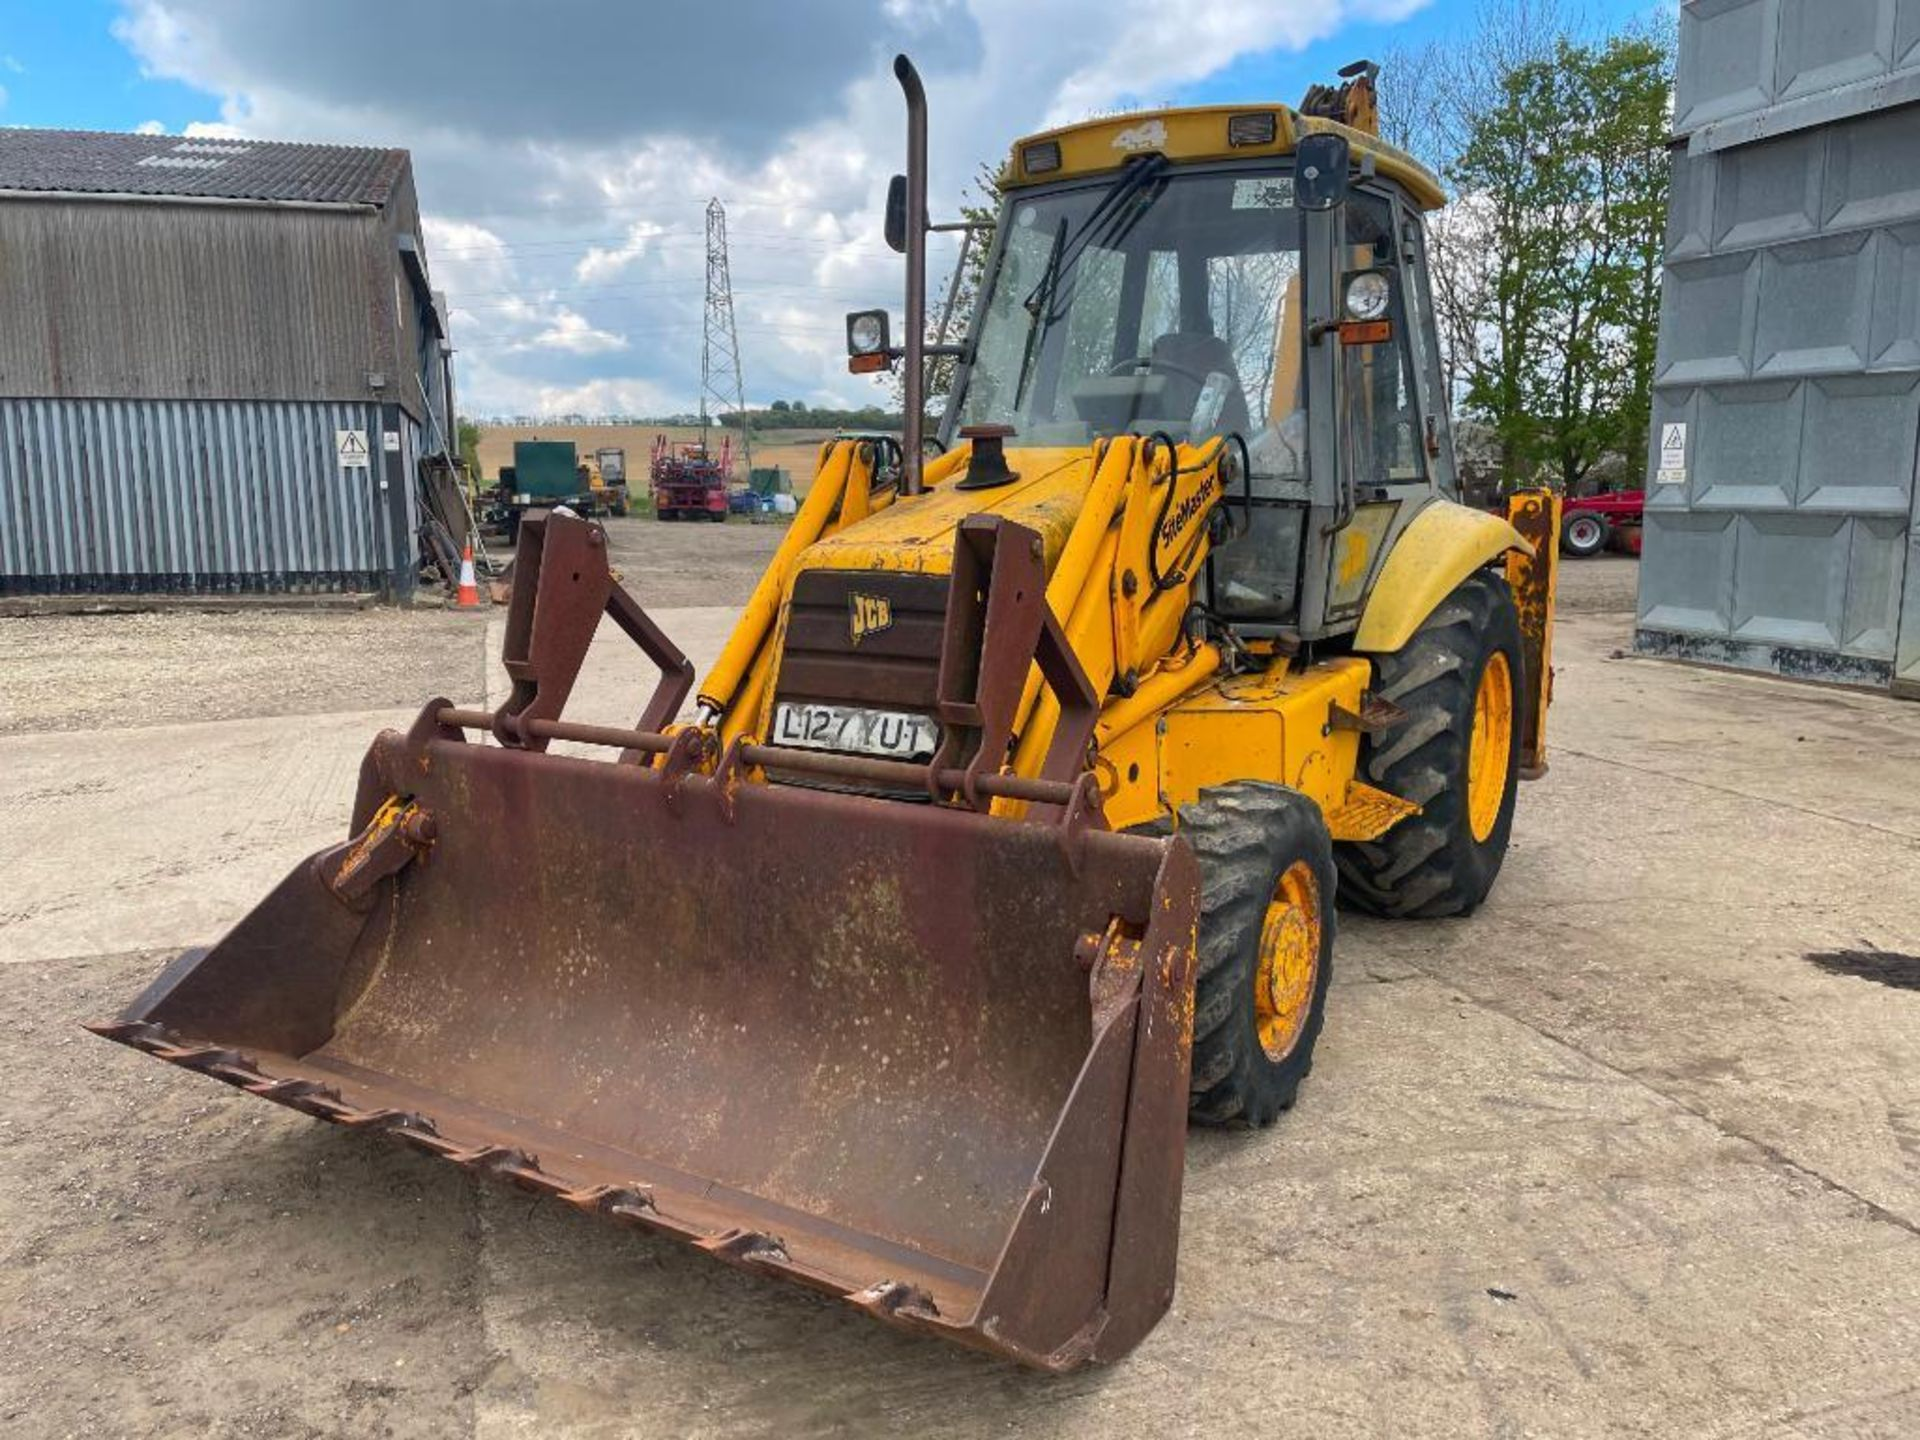 1993 JCB 3CX Sitemaster 4wd back hoe loader with 3 in 1 bucket on 10.5/80-18 front and 18.4-26 rear - Image 4 of 14